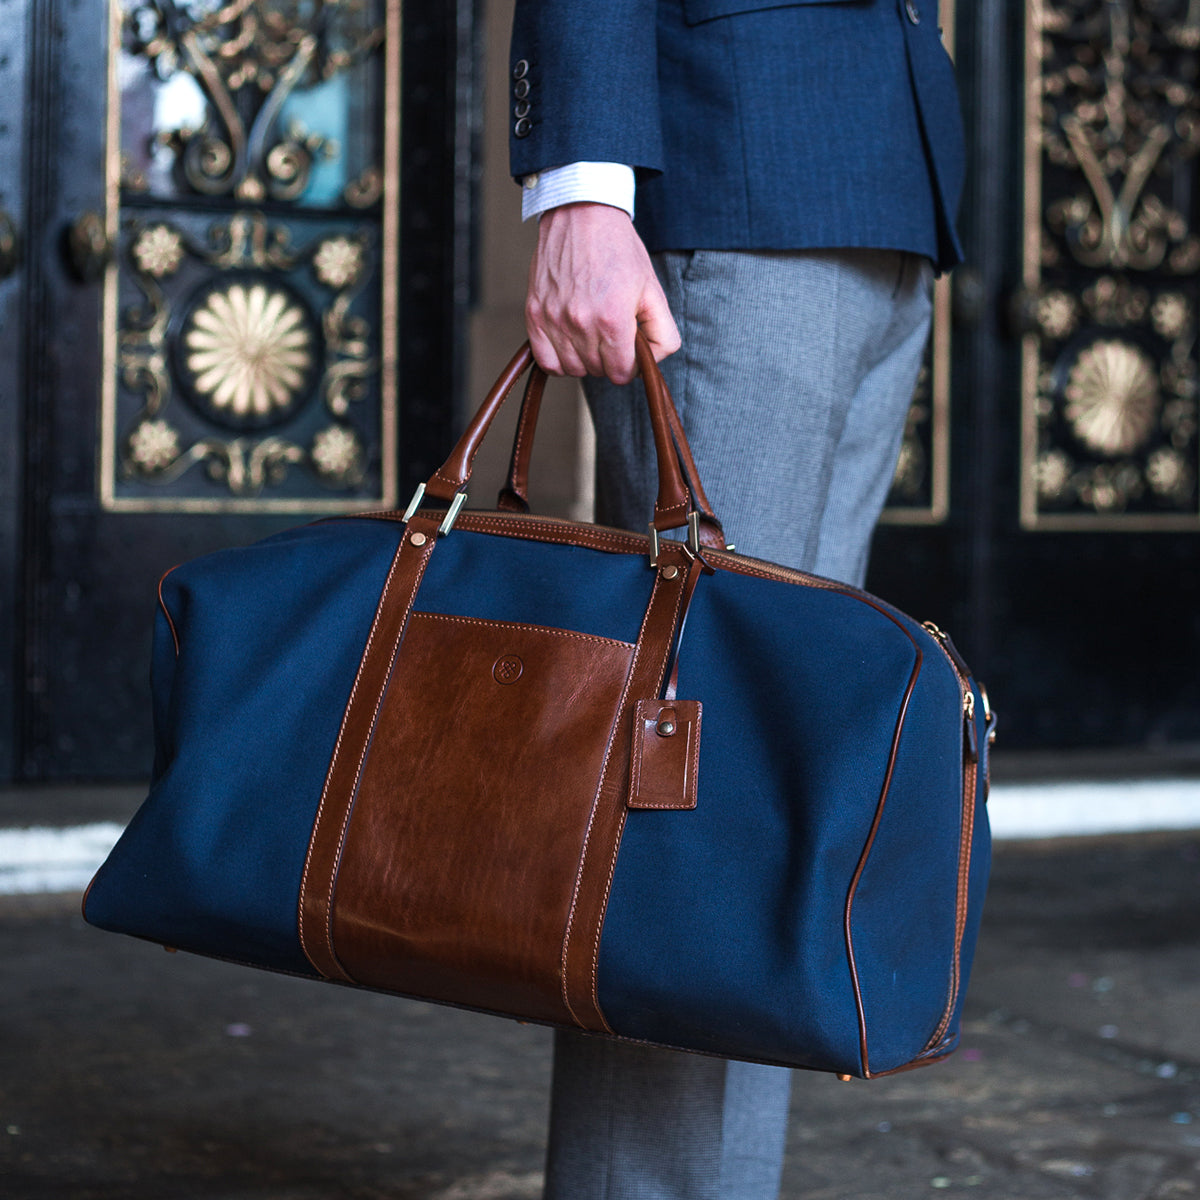 Image 6 of the 'Giovane' Rich Navy and Tan Holdall